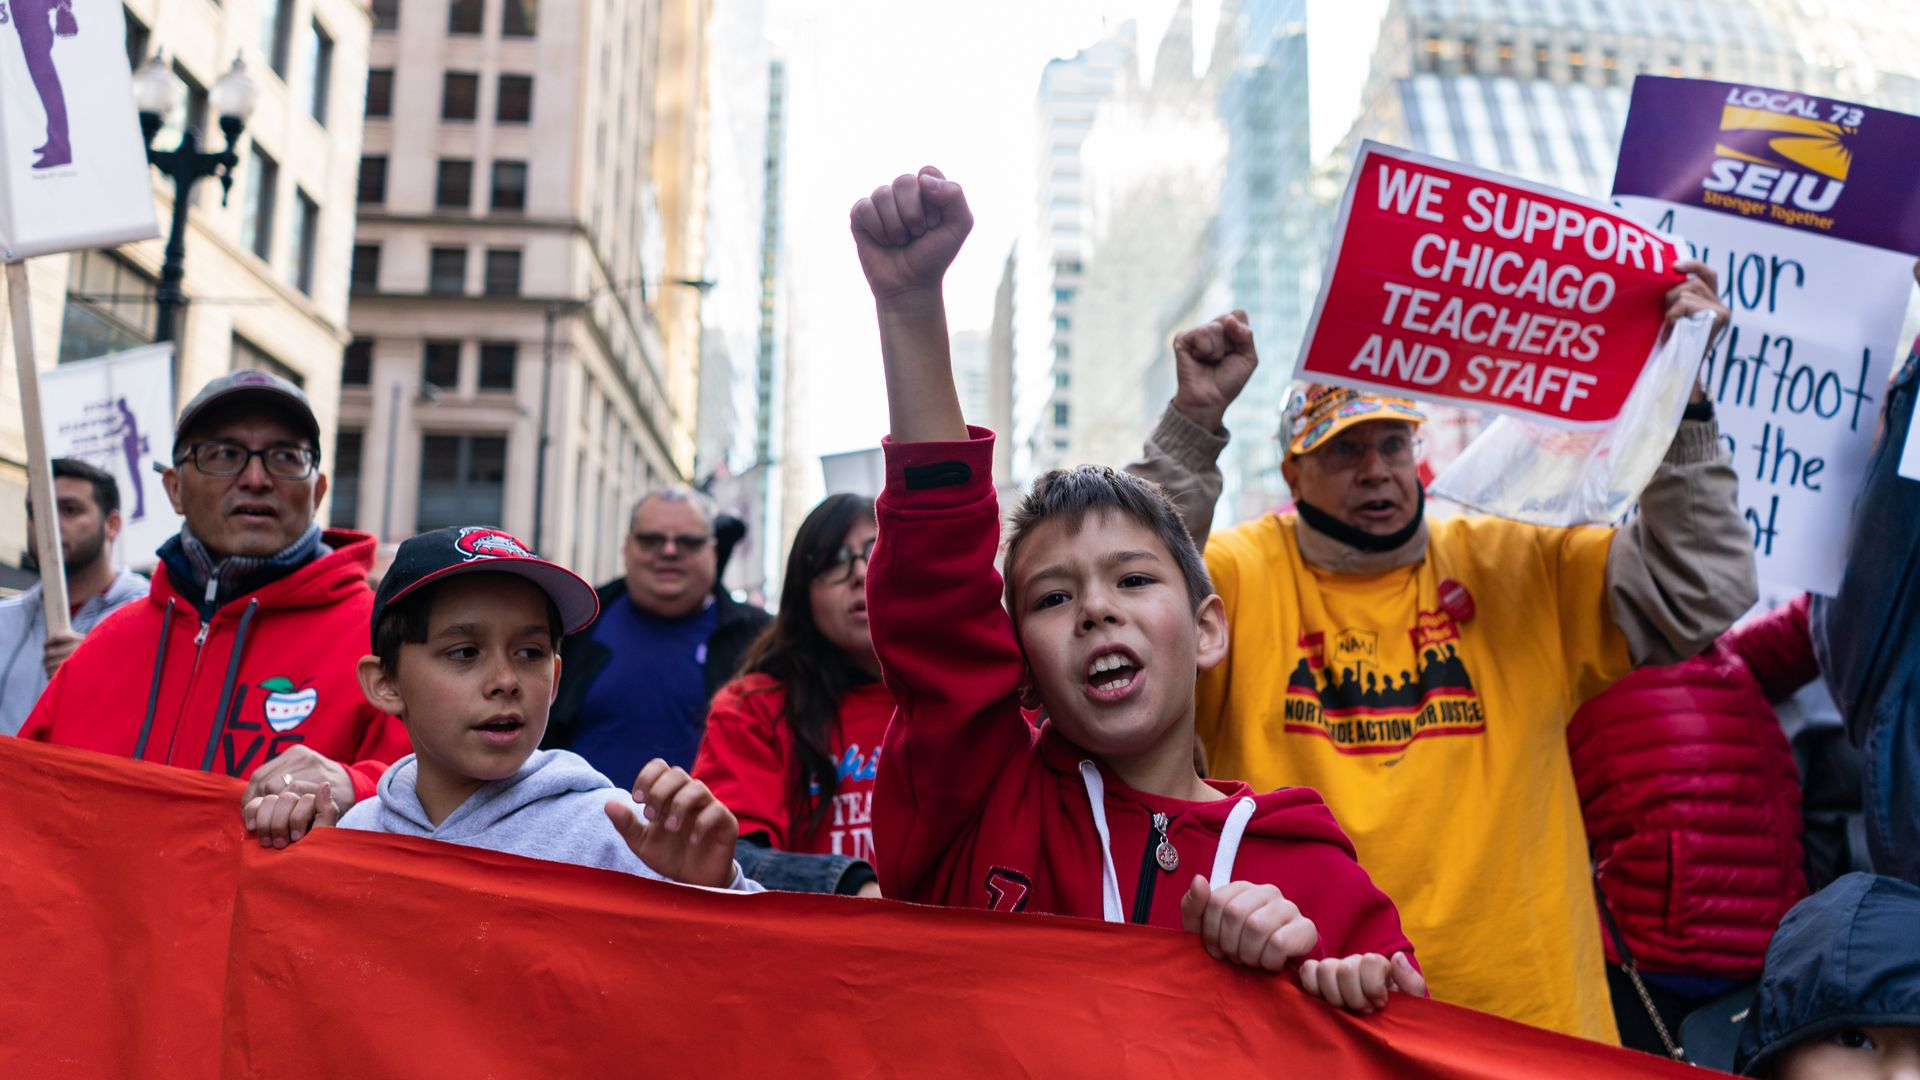 25,000 Chicago teachers strike for better resources for 300,000 students